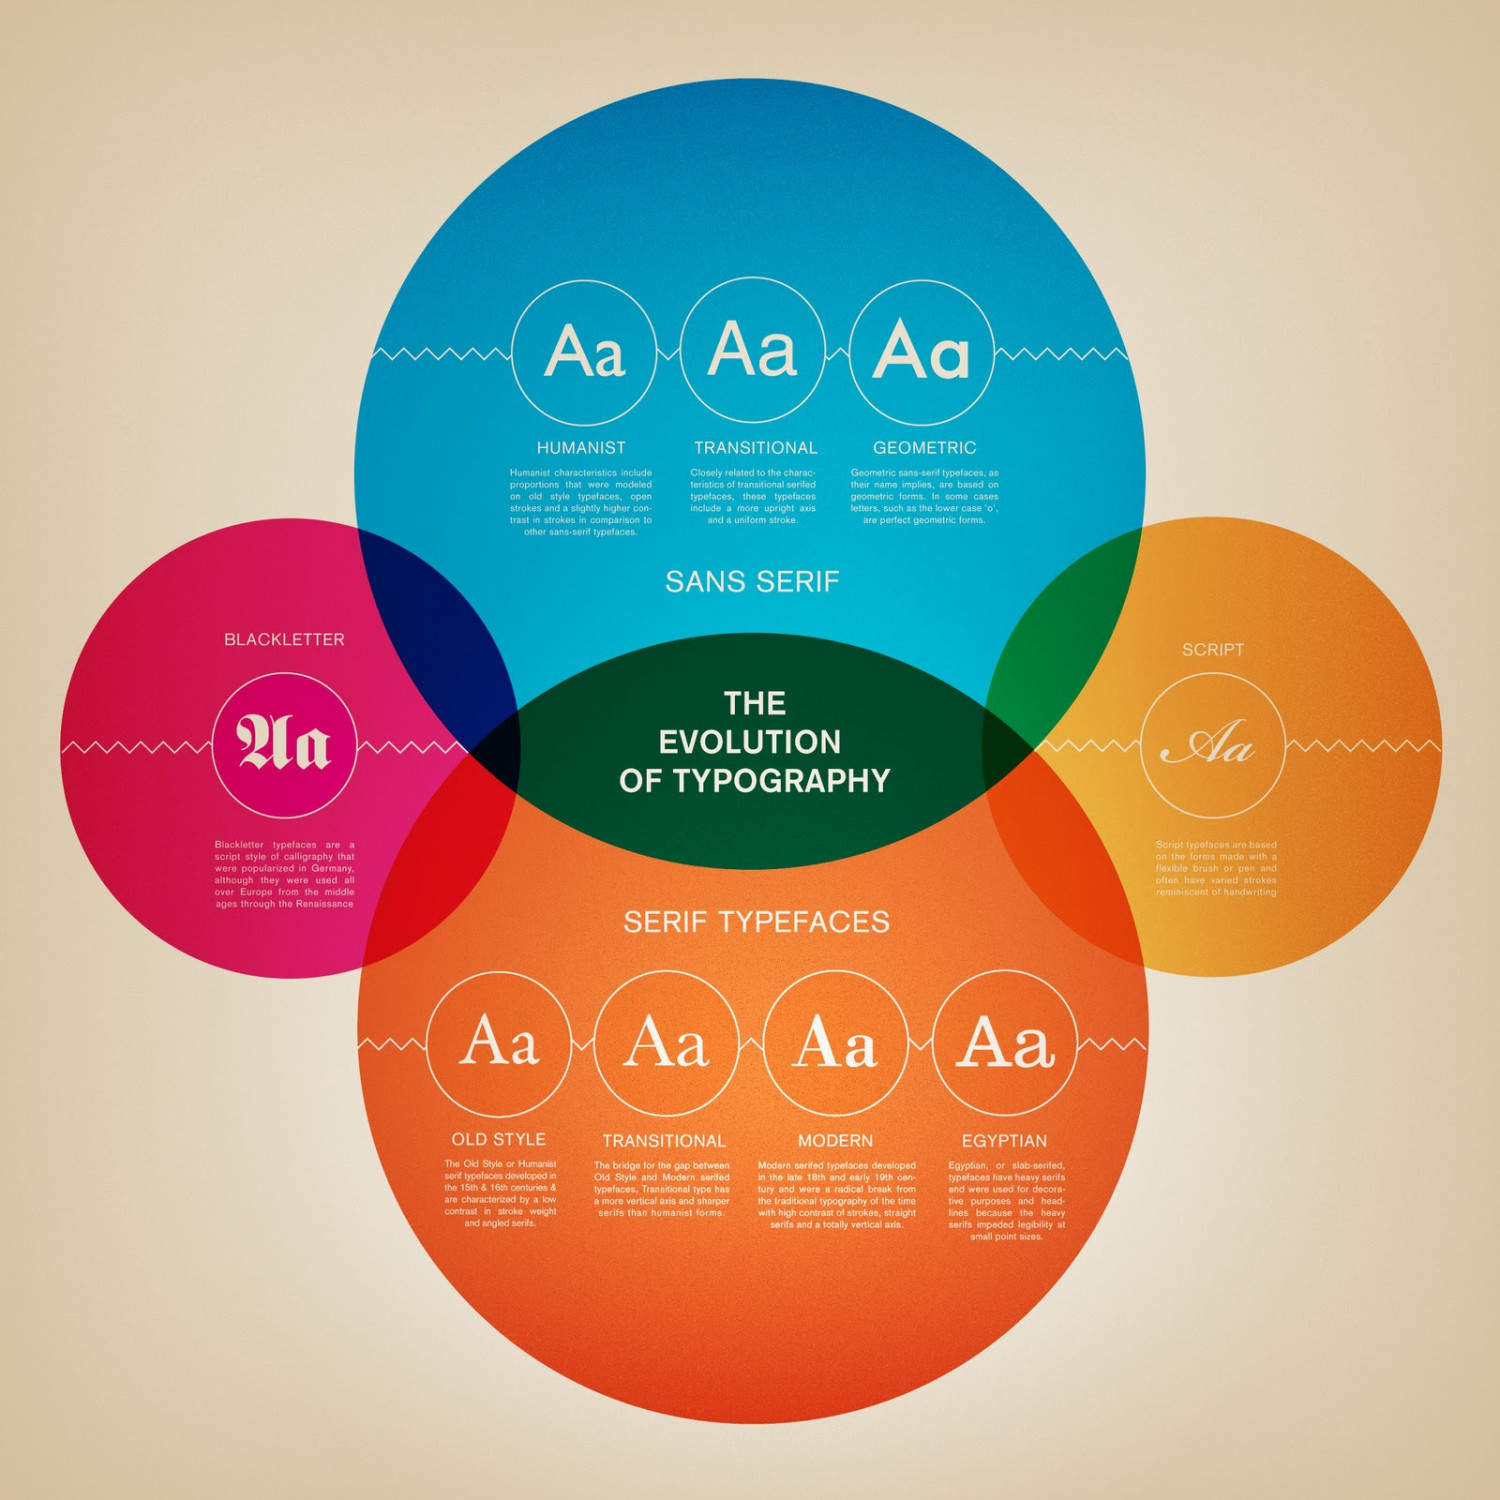 The Evolution of Typography Infographic